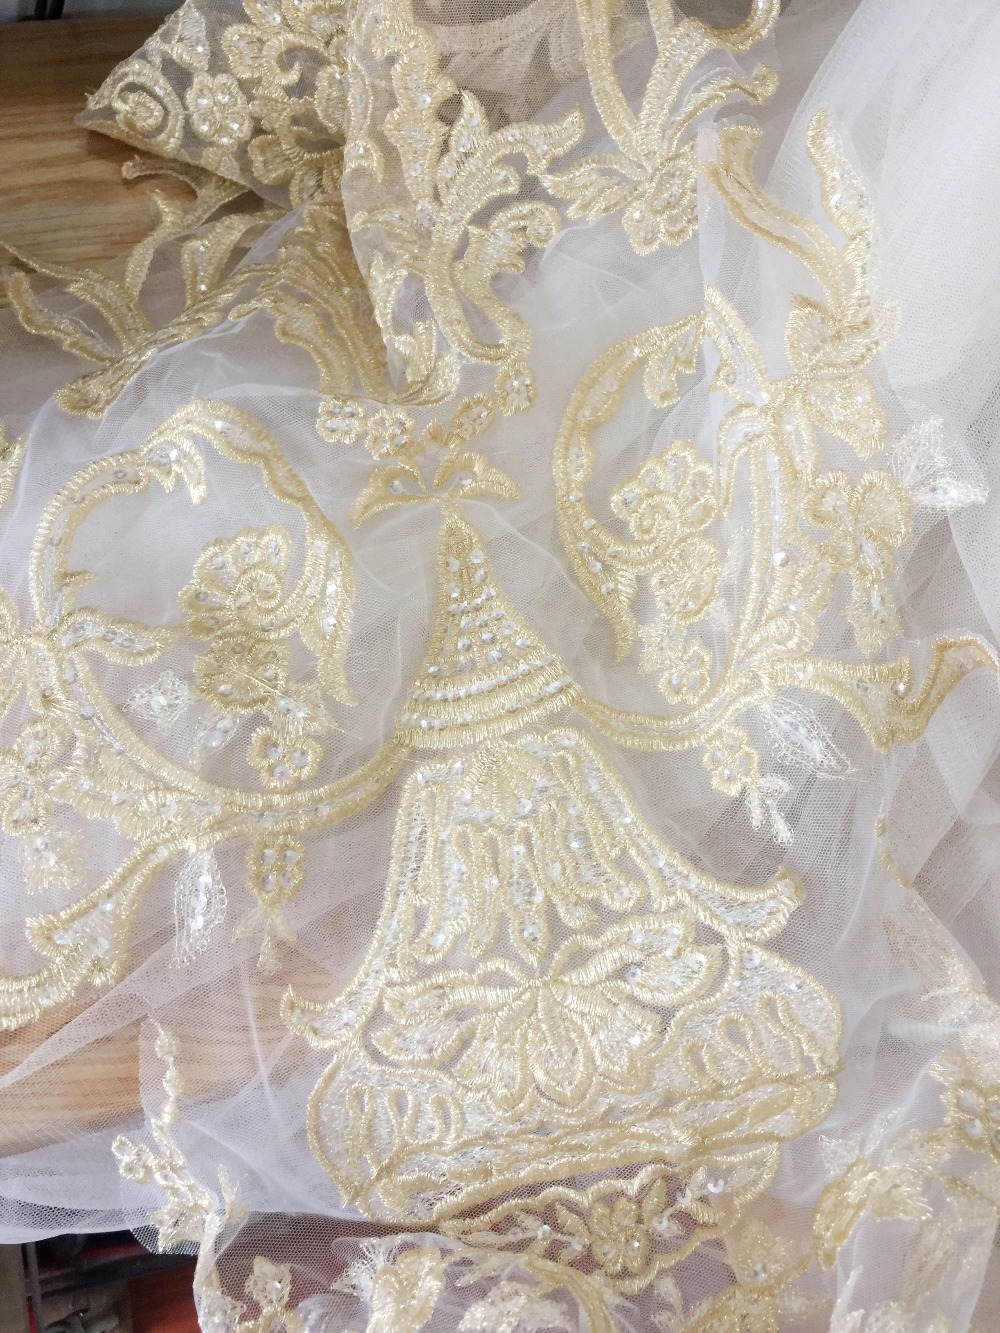 2 pieces God Sequin Largar Lace Applique Gold Embroidery Bridal Lace Motif Patch for Prom Dress Costumes Design in Patches from Home Garden